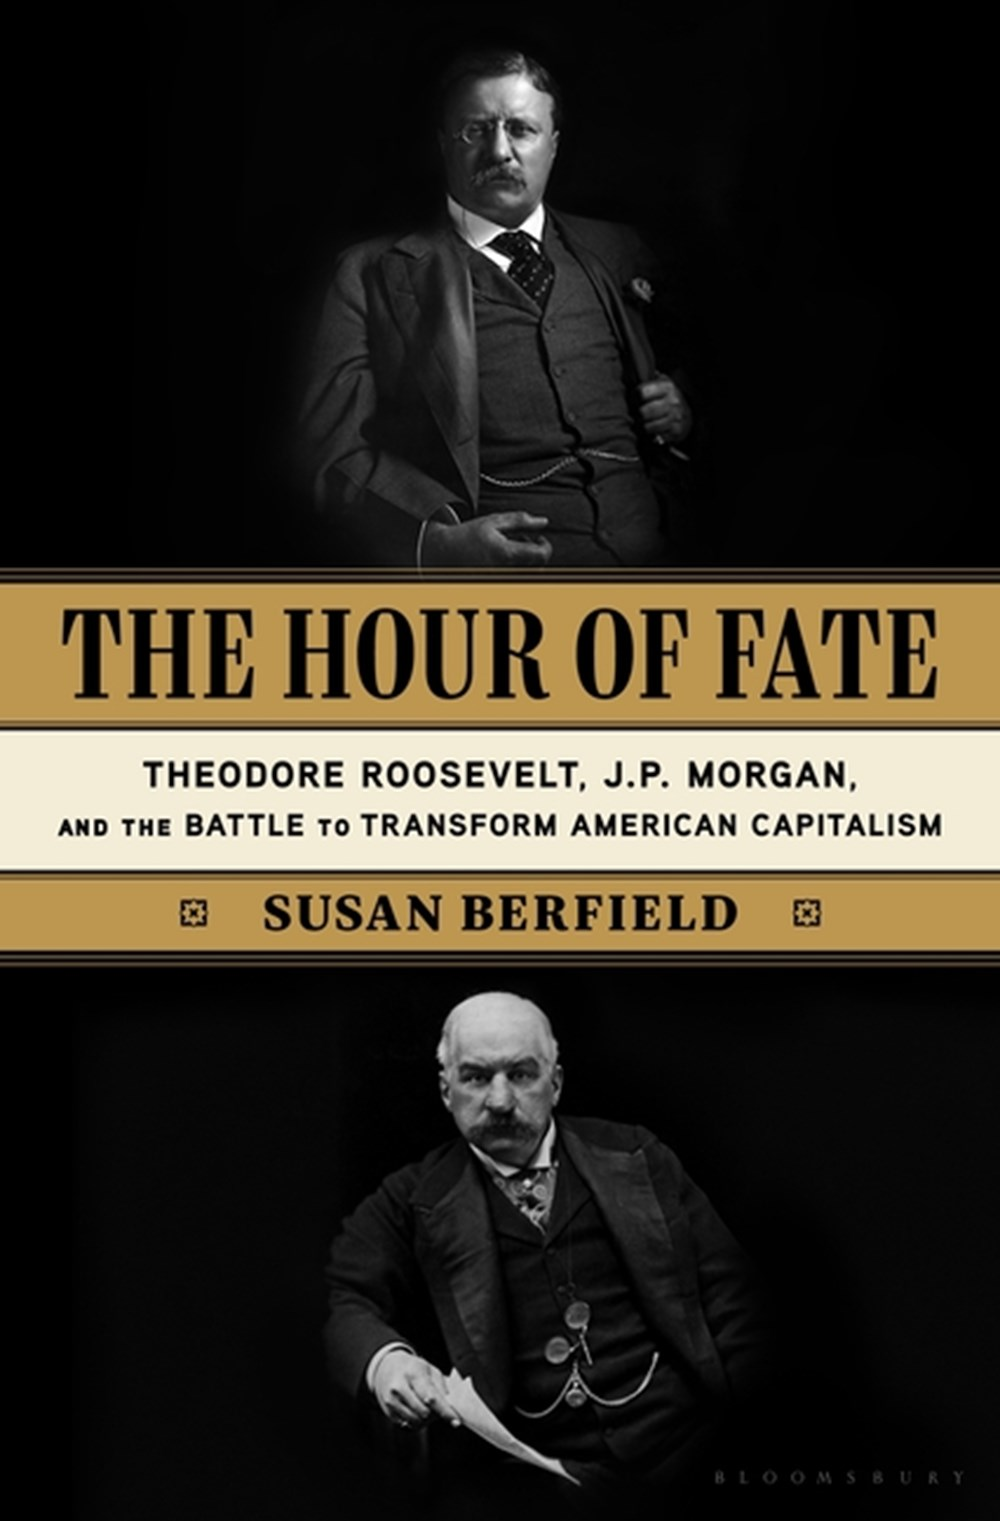 Hour of Fate: Theodore Roosevelt, J.P. Morgan, and the Battle to Transform American Capitalism